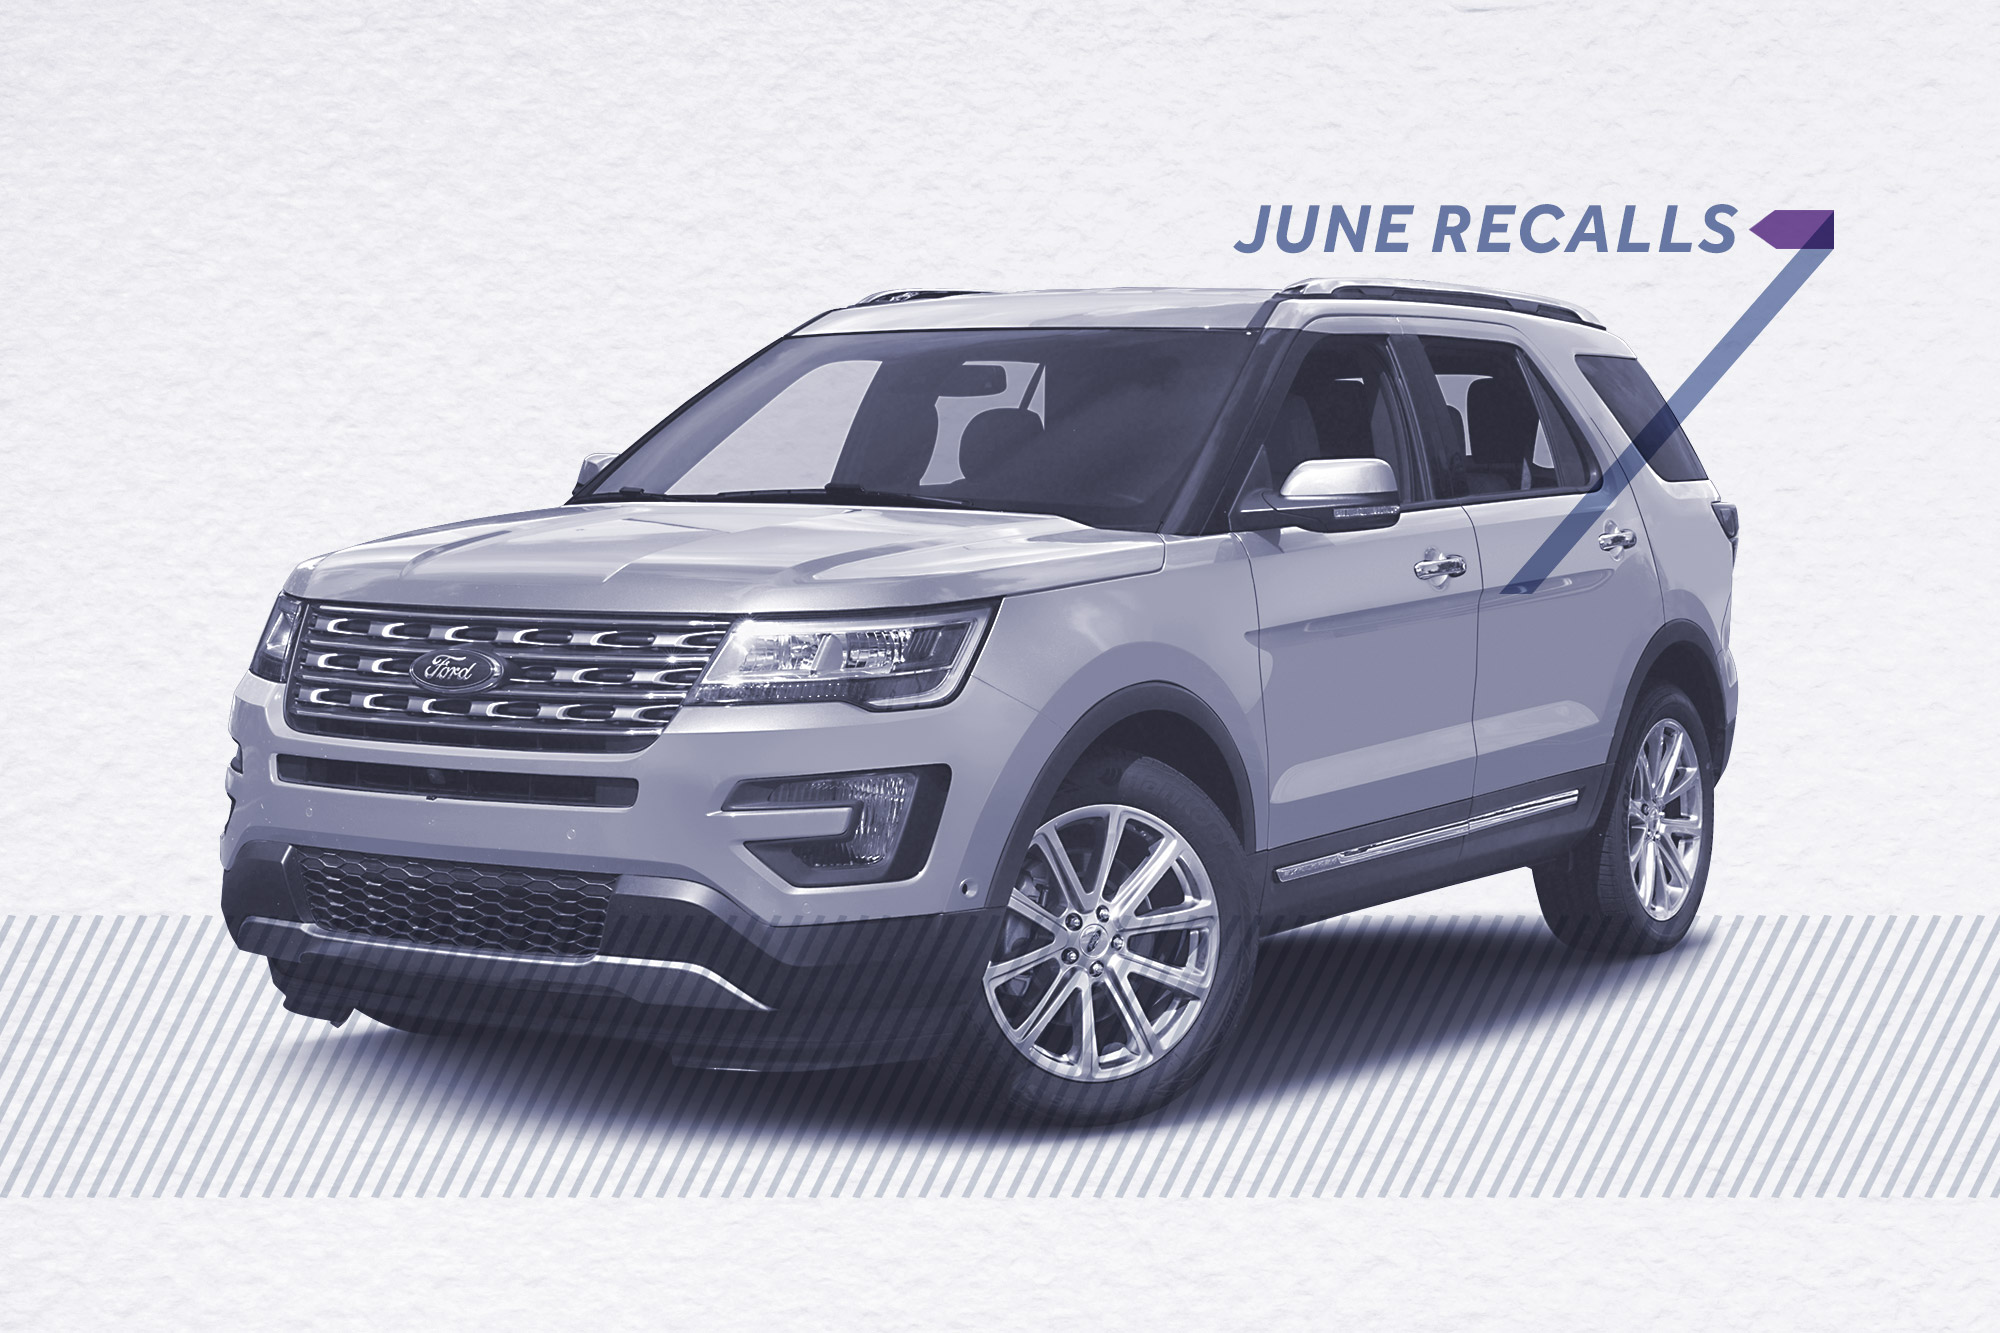 hight resolution of recall recap the 5 biggest recalls in june 2019